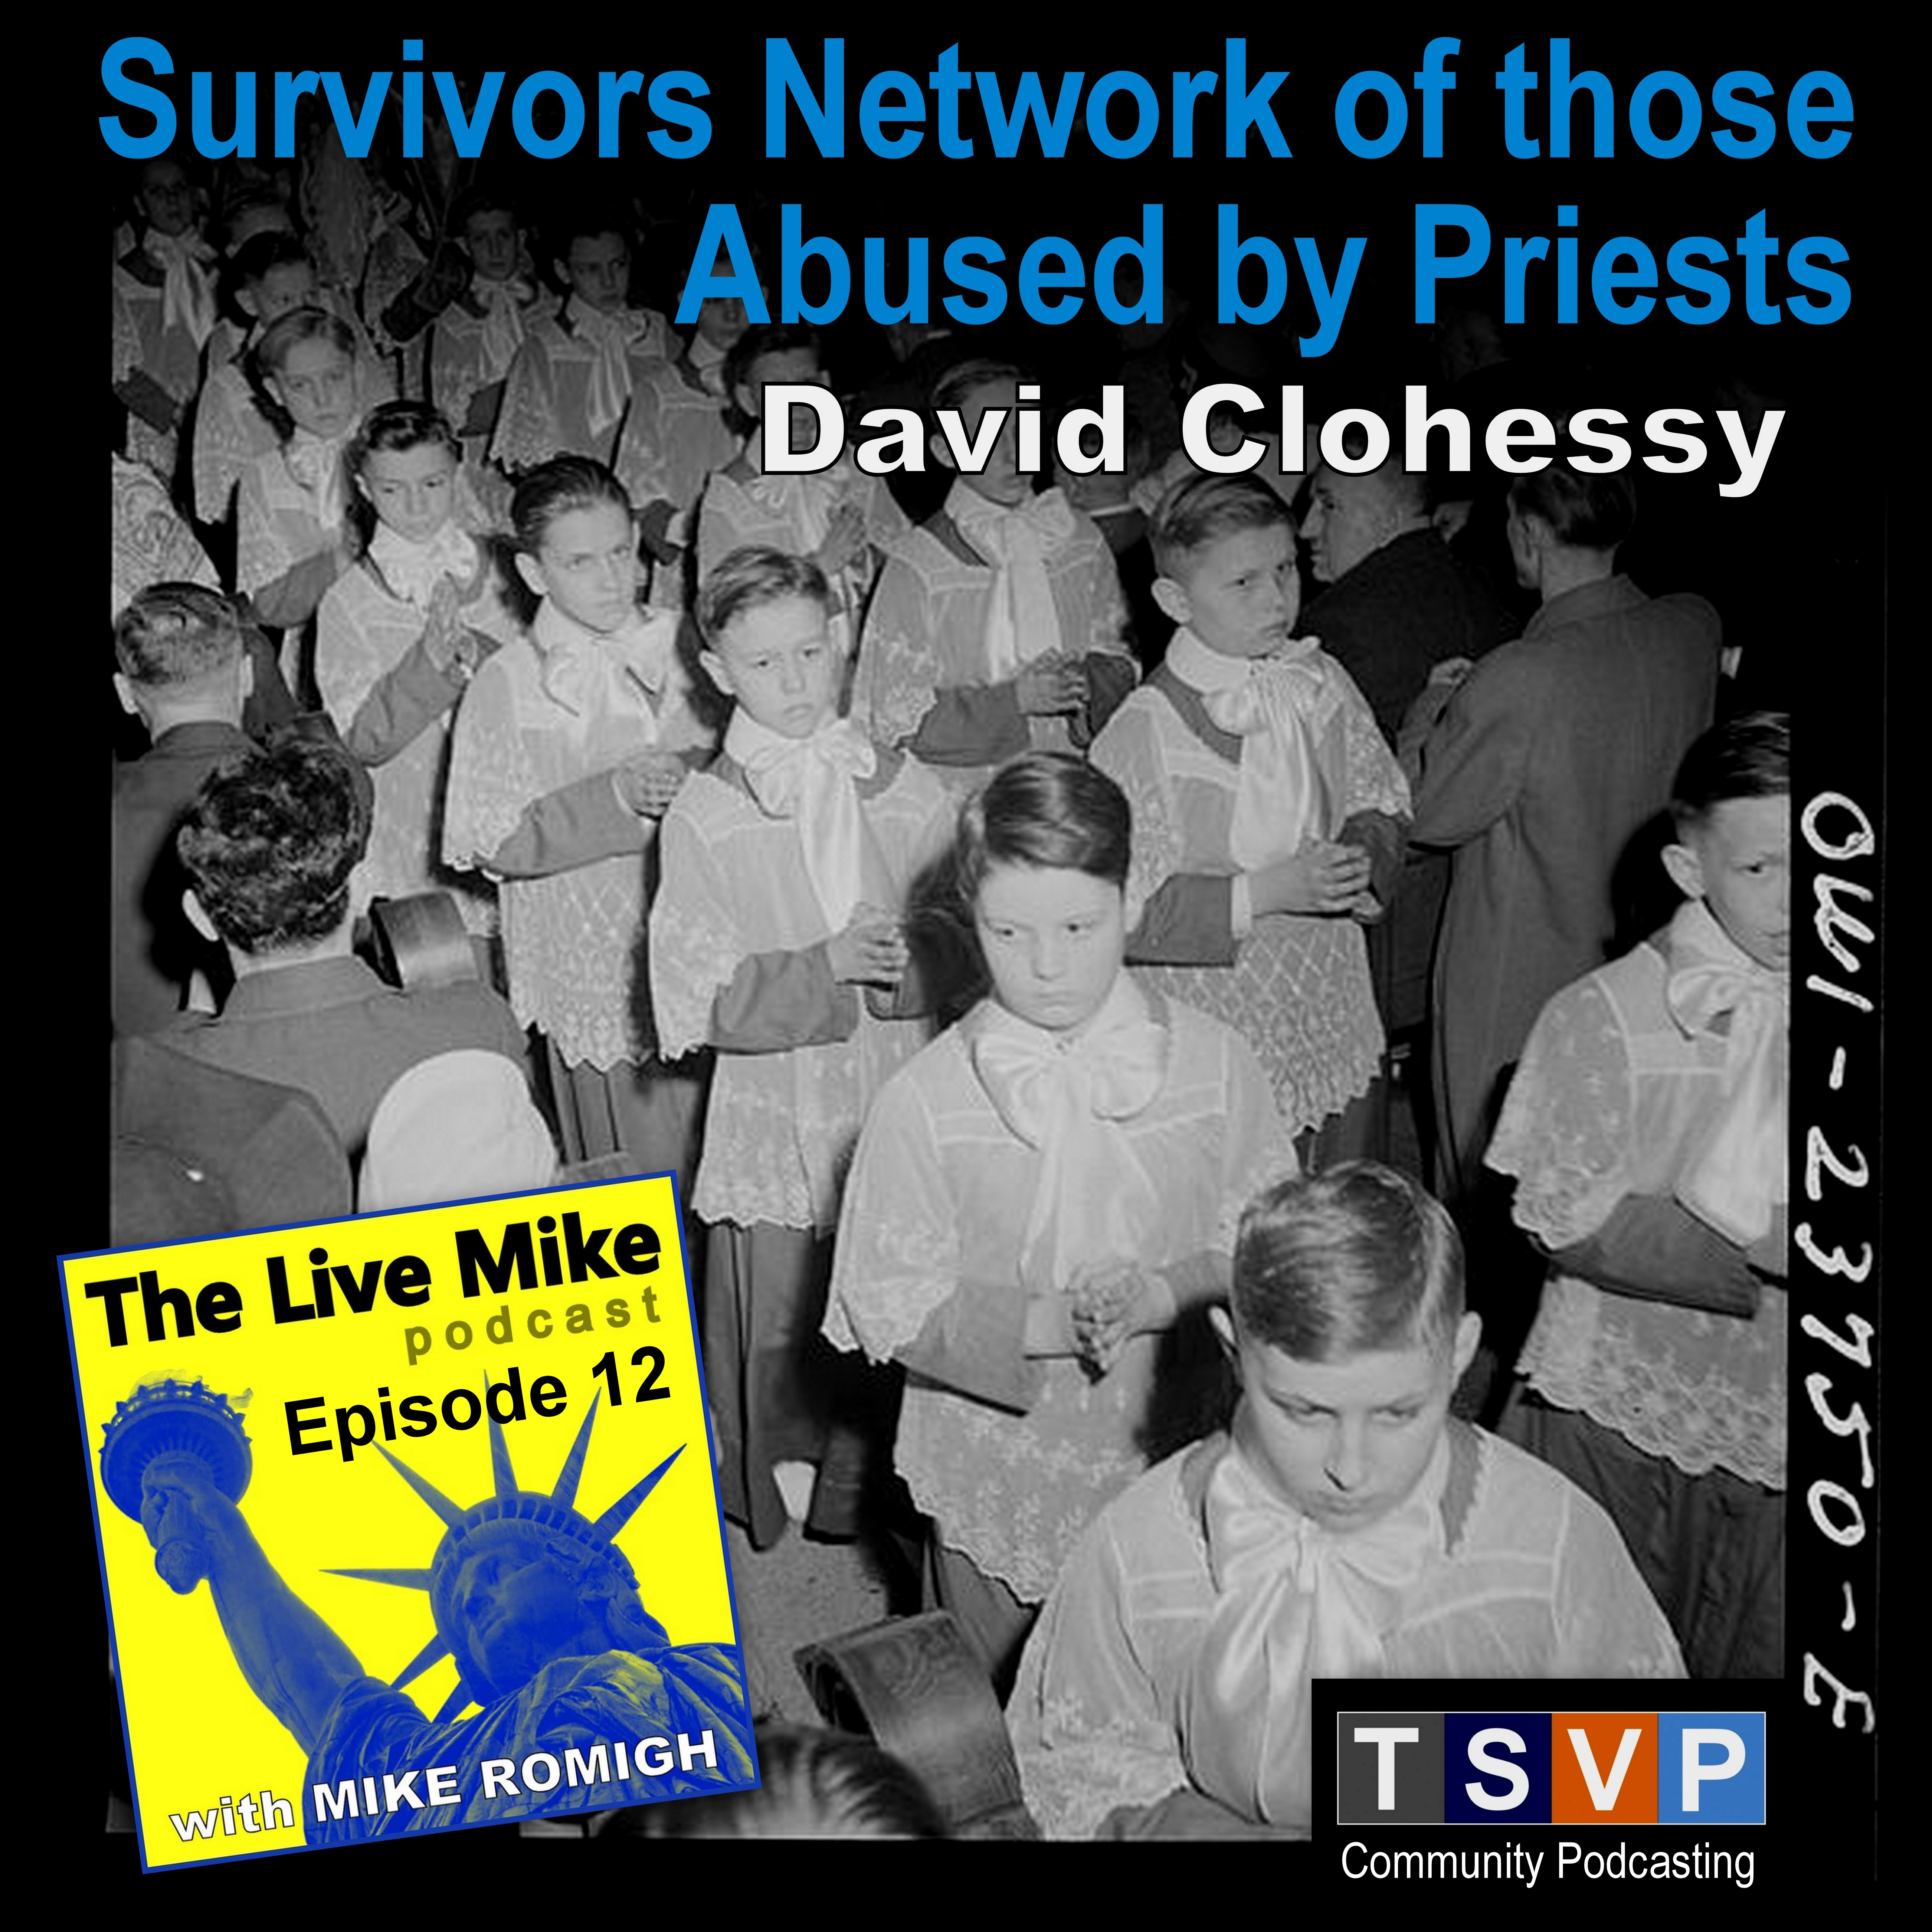 The Live Mike Podcast (Ep12): David Clohessy